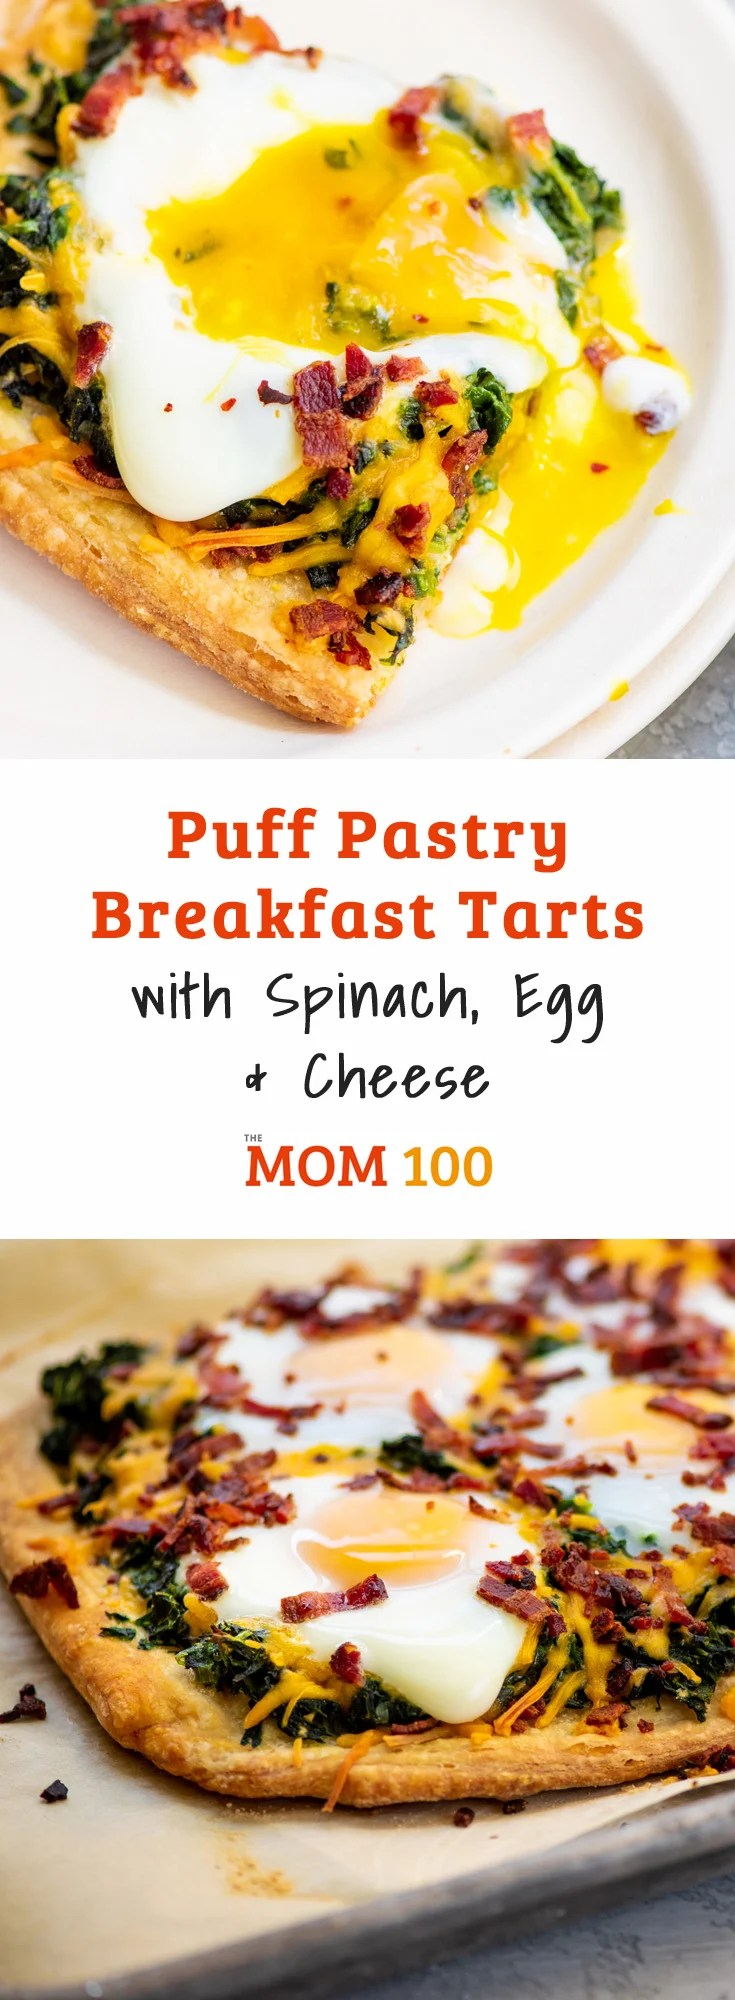 Puff Pastry Breakfast Tarts with Spinach, Egg and Cheese / These Puff Pastry Breakfast Tarts with Spinach, Egg and Cheese look super special and fancy.... but they are really easy to make! #breakfast #brunch